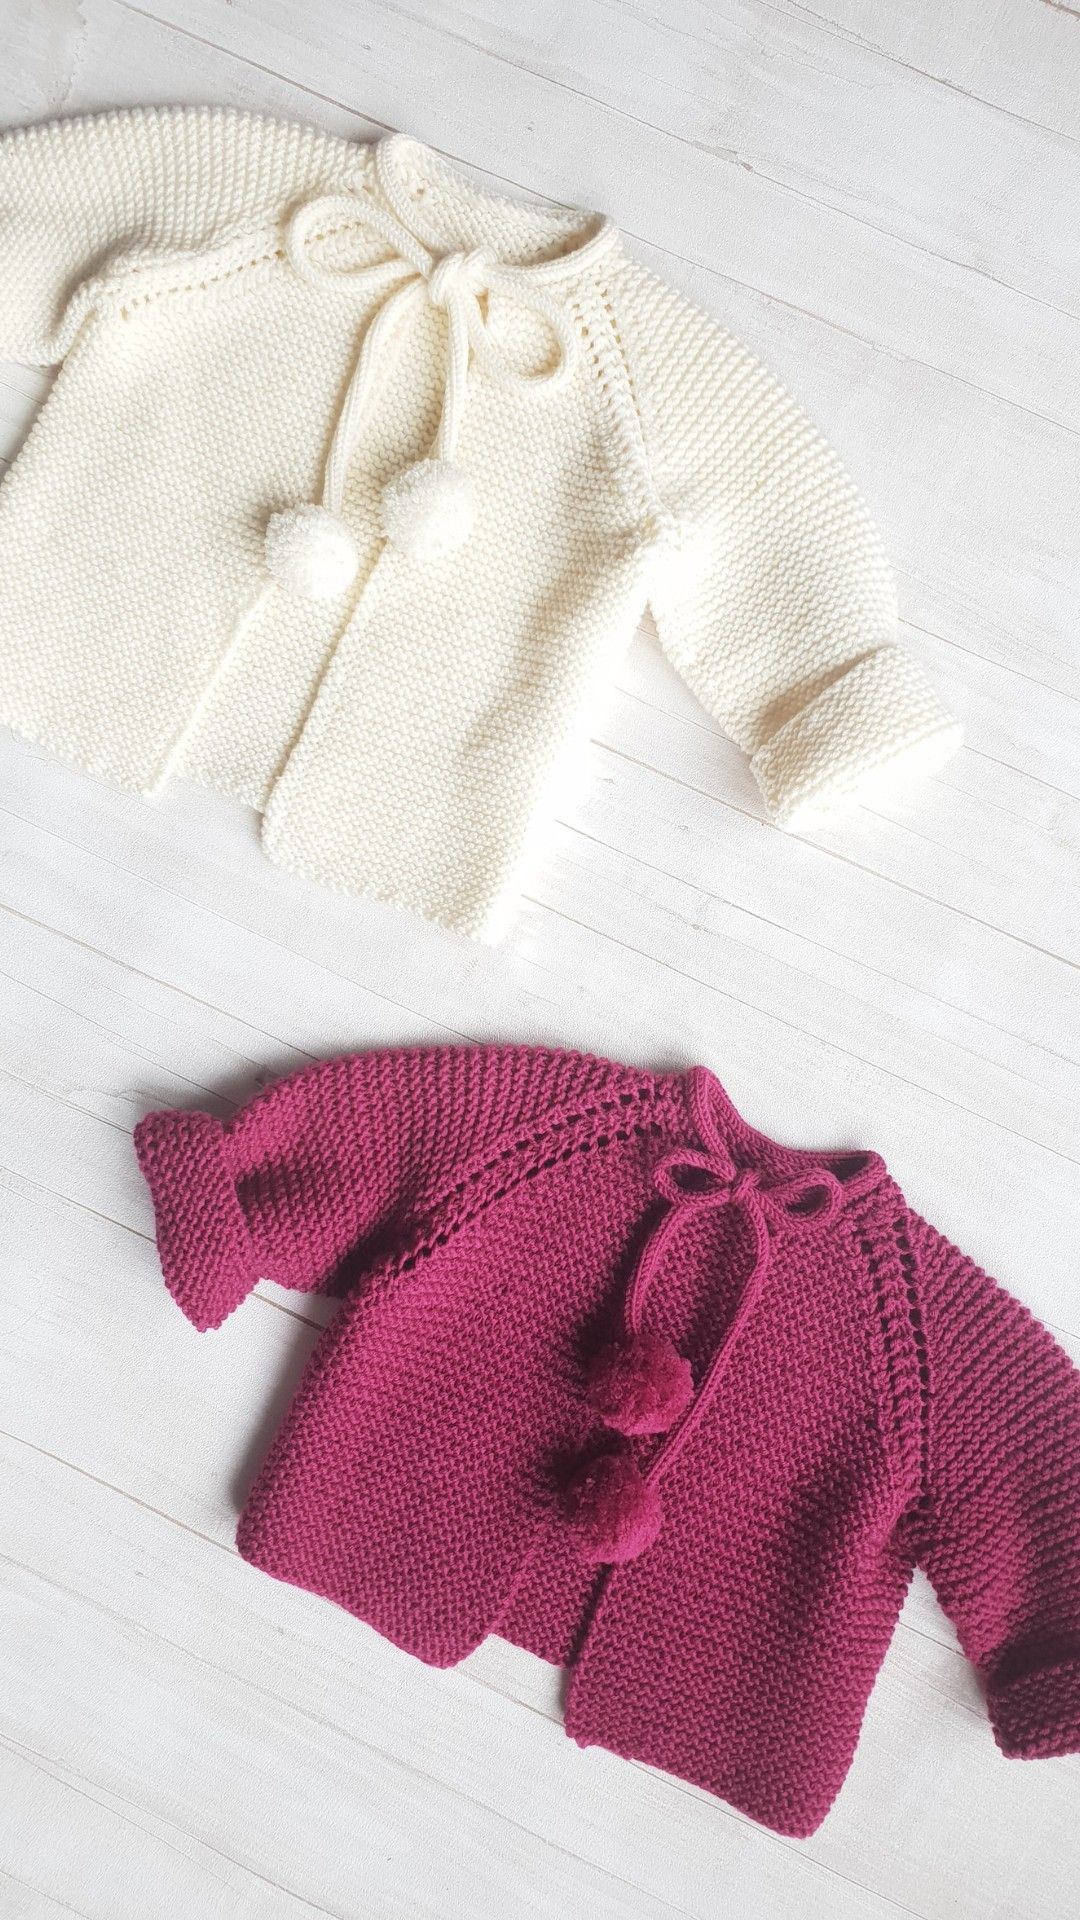 7daeefbec3b4 Merino wool baby cardigan with pom pom bands